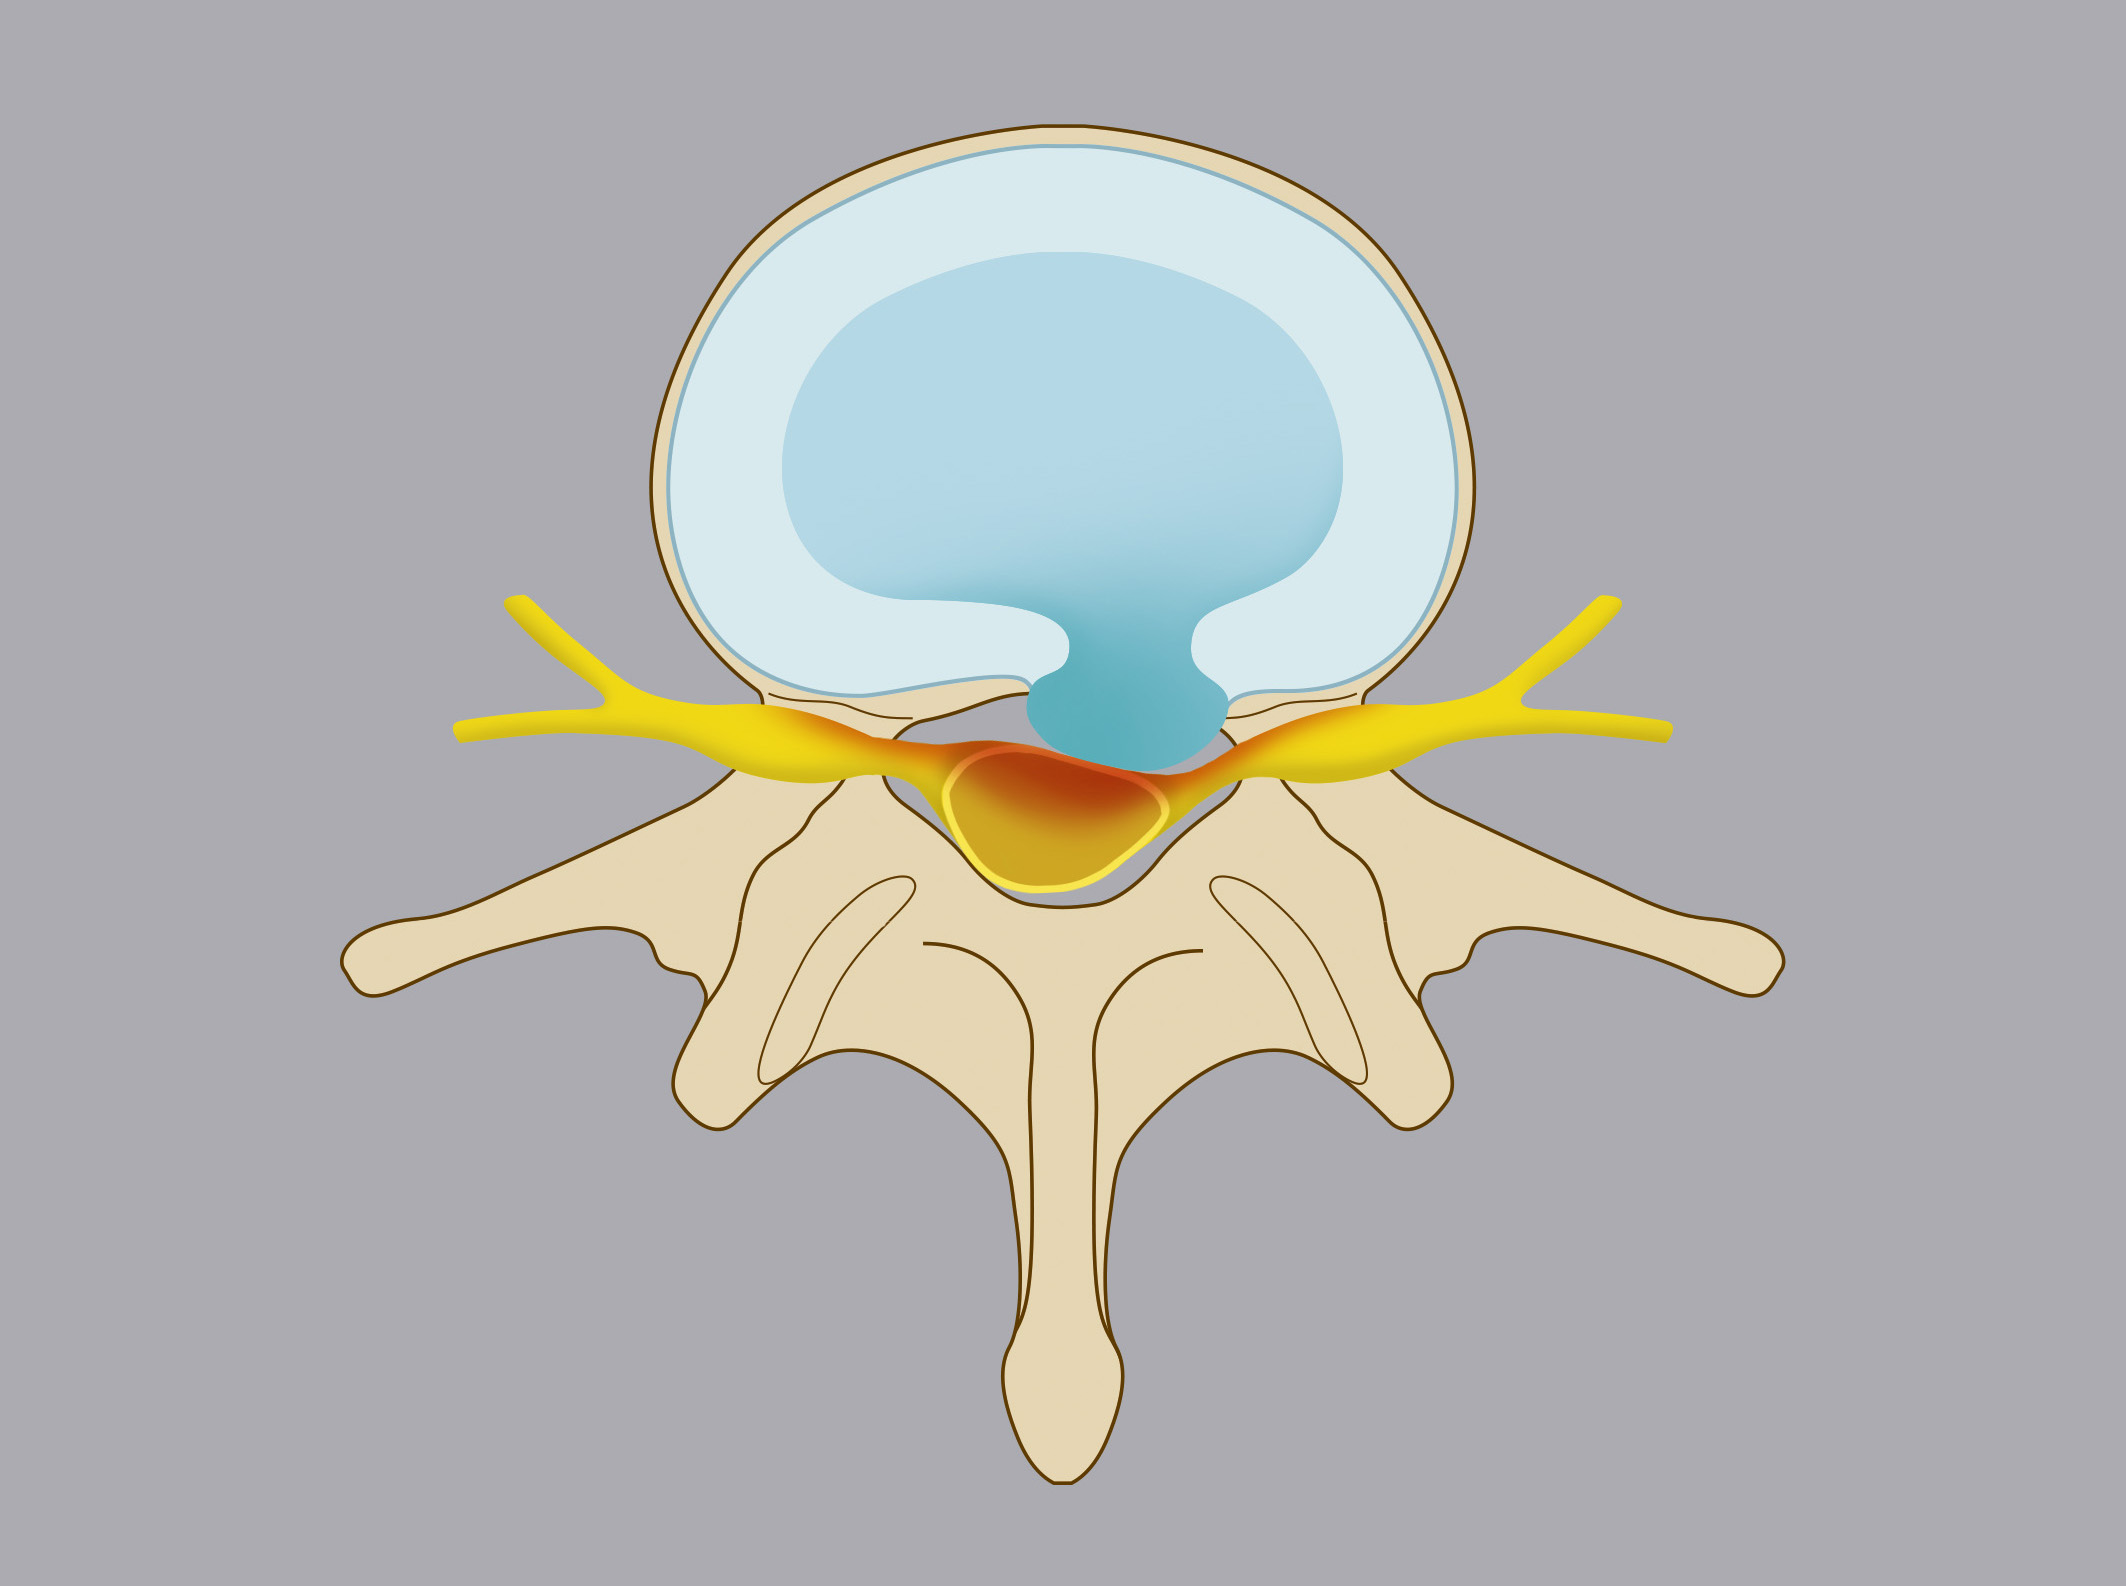 Intracanal herniation. The nucleus pulposus spills into the spinal canal, compressing nerve roots  and/or spinal cord.